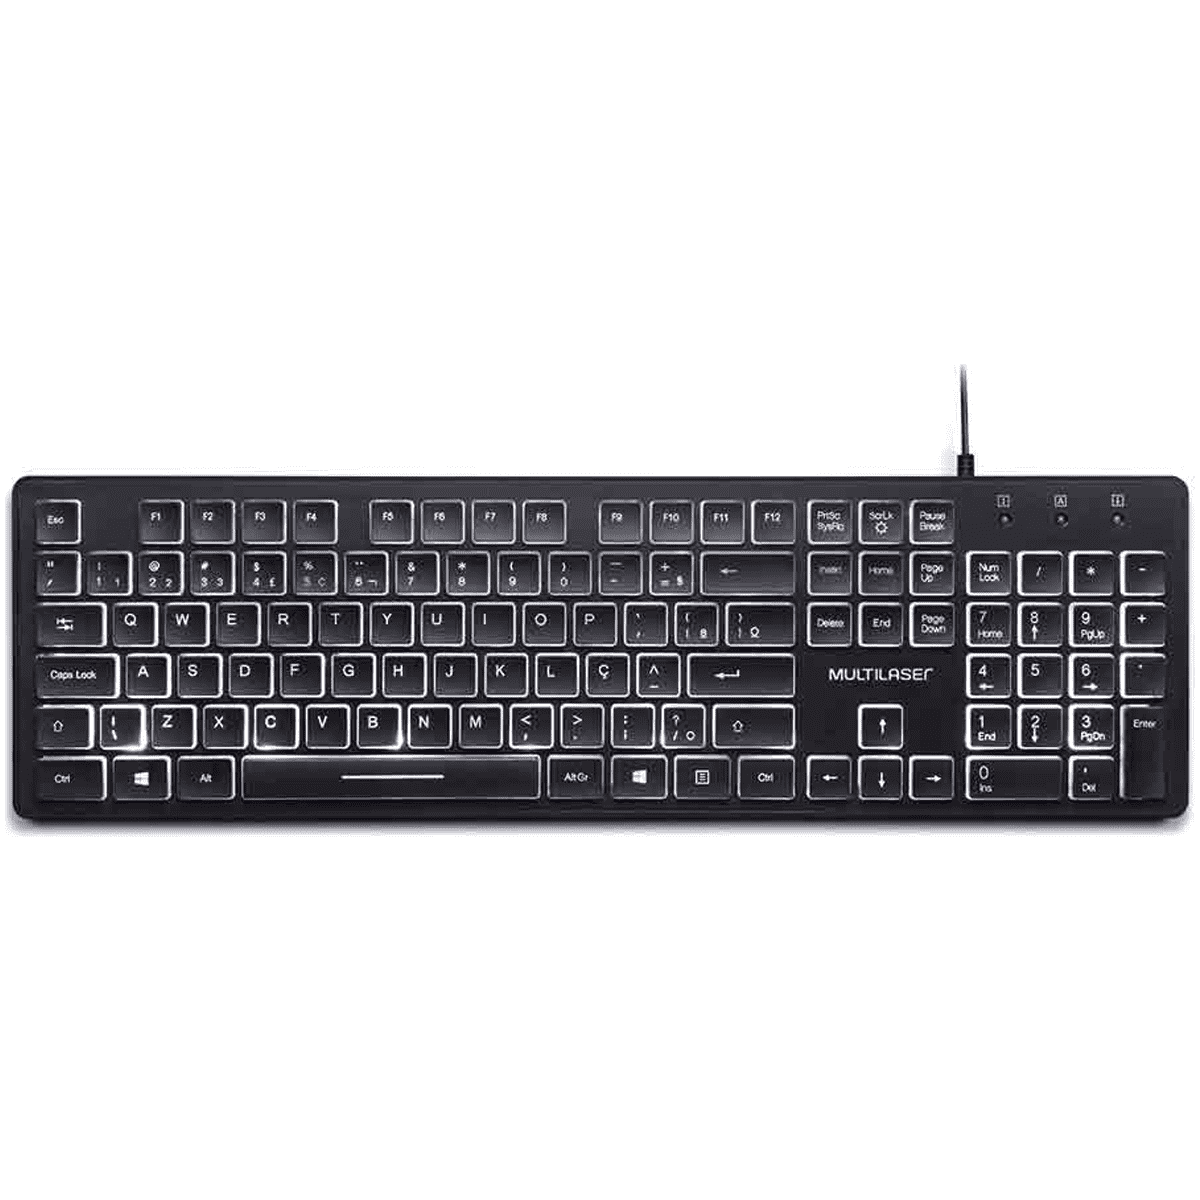 Teclado Office com LED branca TC218 preto Multilaser unid.